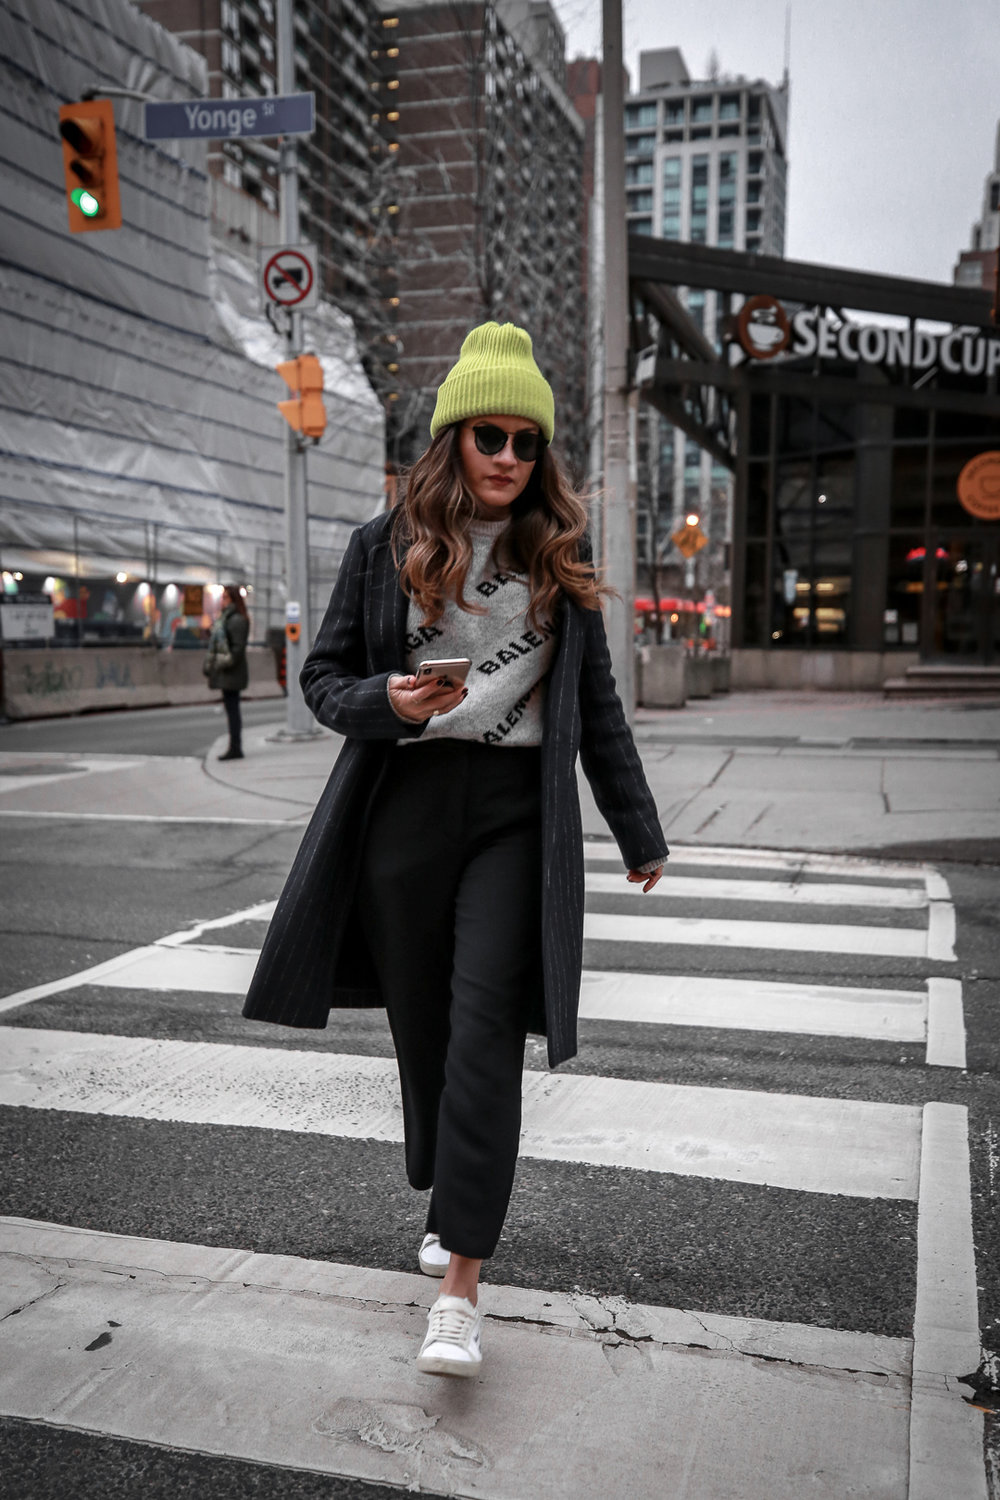 Nathalie Martin wearing Balenciaga cropped logo sweater, Aritzia black Jallade pant, Saint Laurent white canvas court sneakers, Aritzia navy pinstripe Stedman coat, neon green beanie, Bonlook Way sunglasses, street style, woahstyle.com_3964.jpg